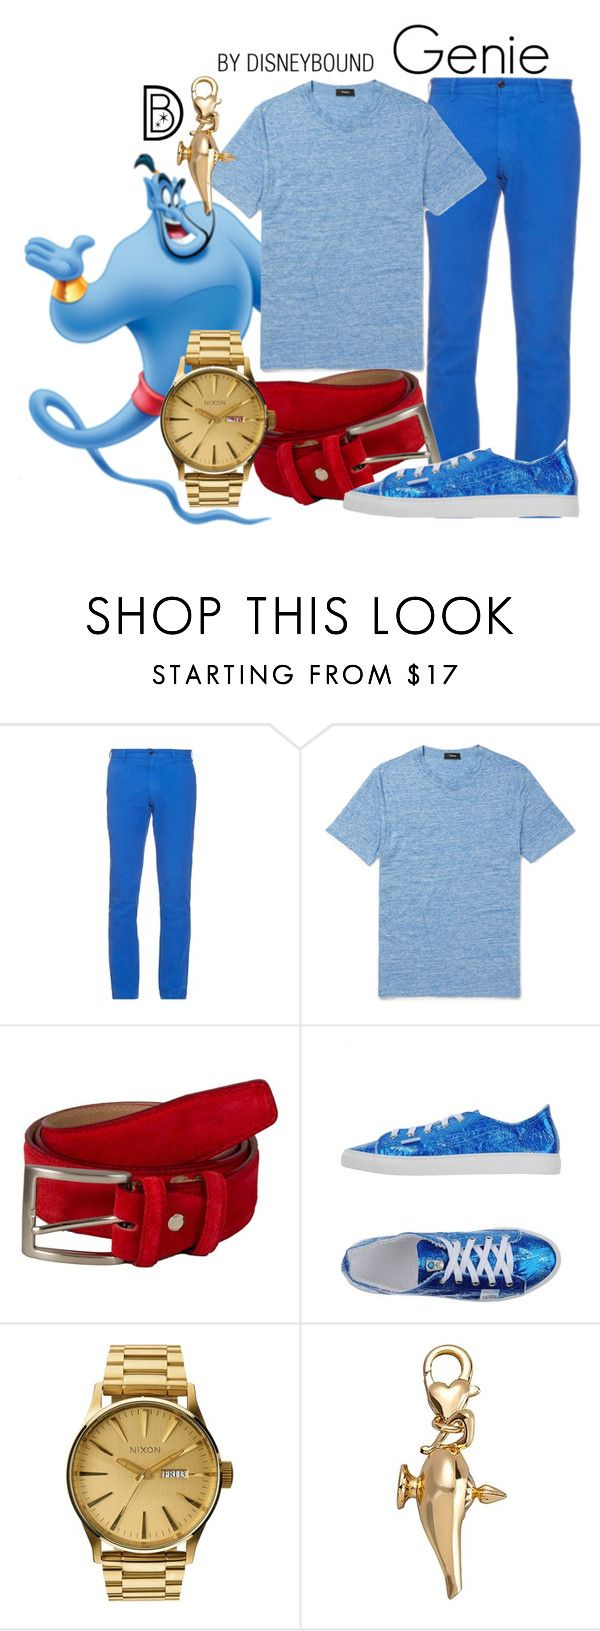 """""""Genie"""" by leslieakay ❤ liked on Polyvore featuring Polo Ralph Lauren, 40 Colori, Nixon, Disney, men's fashion, menswear, disney, disneybound and disneycharacter"""